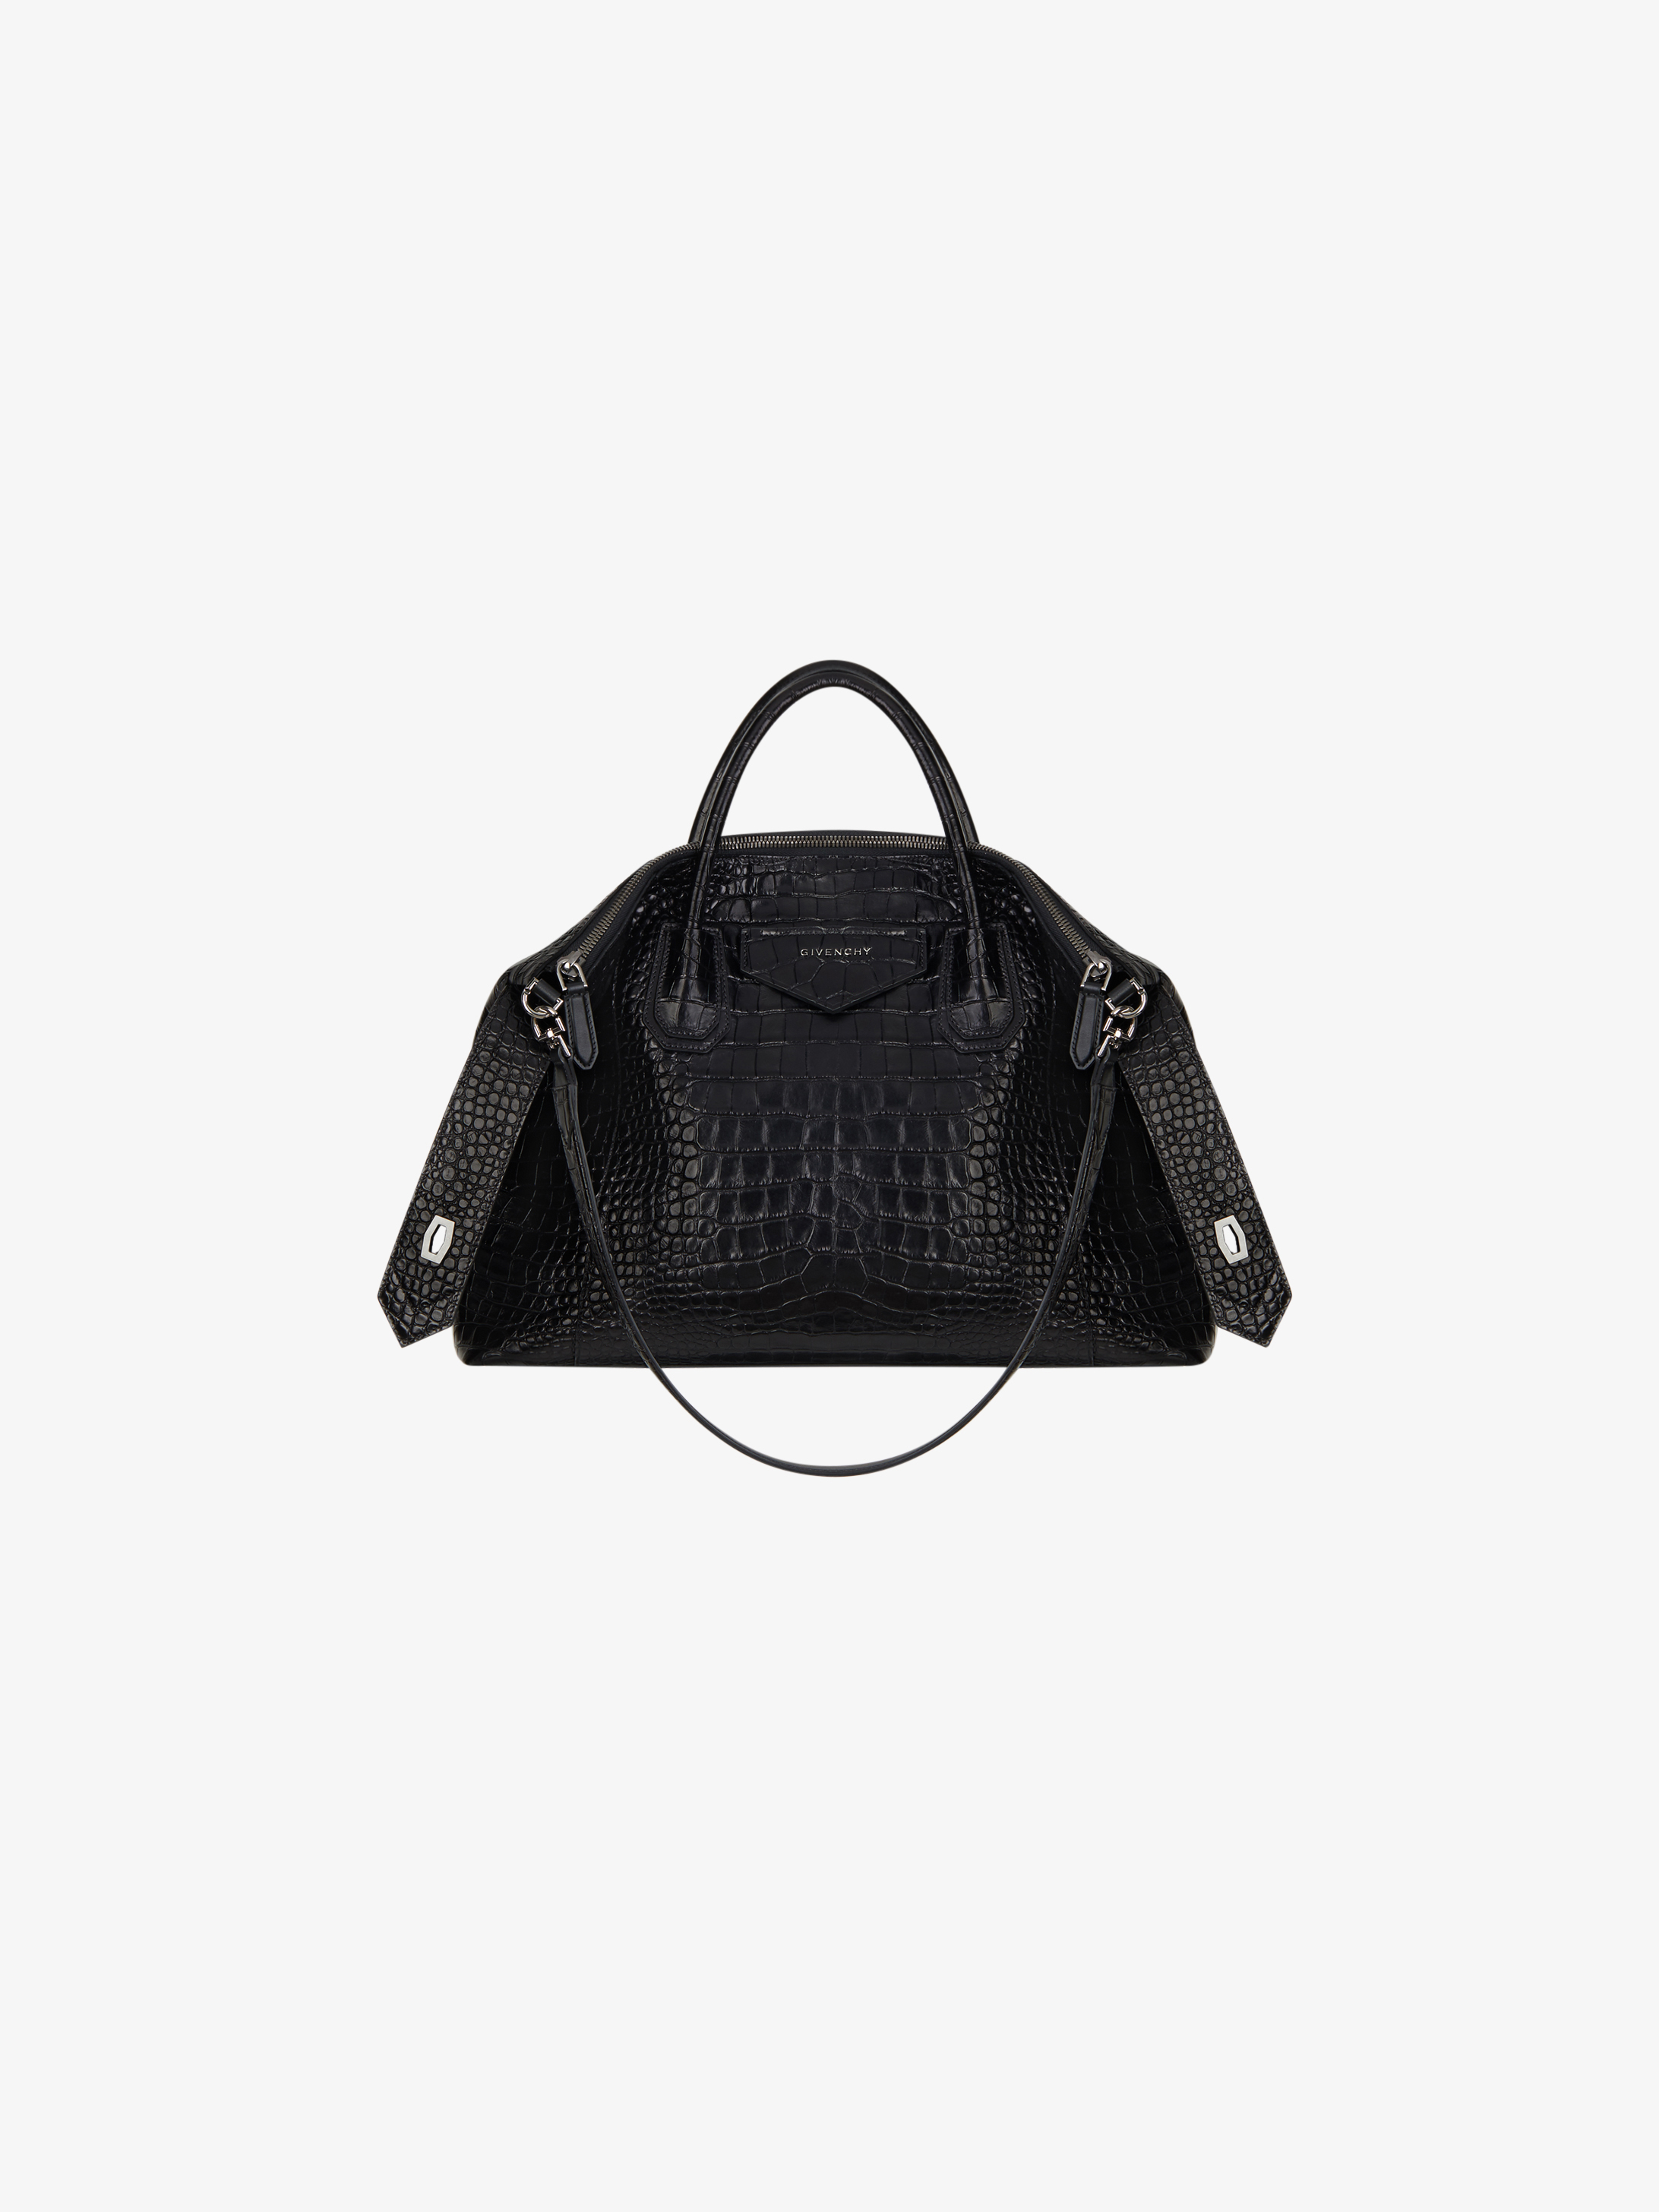 Medium Antigona Soft bag in crocodile effect leather